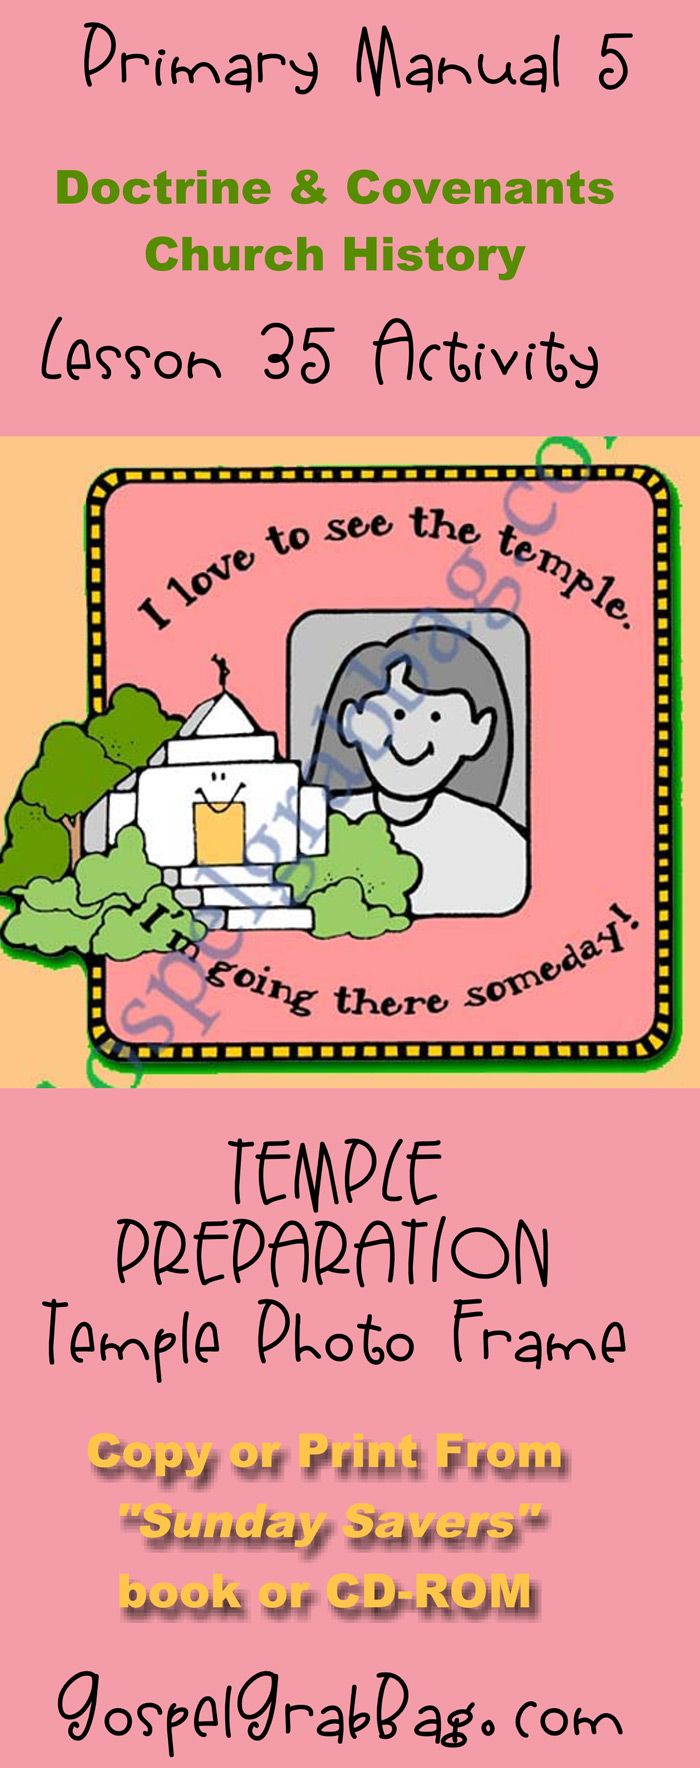 TEMPLES - ORDINANCES - Temple Photo Frame, Doctrine and Covenants, LDS Primary Lesson 35: The Nauvoo Temple Is Used for Sacred Ordinances, Sunday Savers book or CD-ROM, GospelGrabBag.com